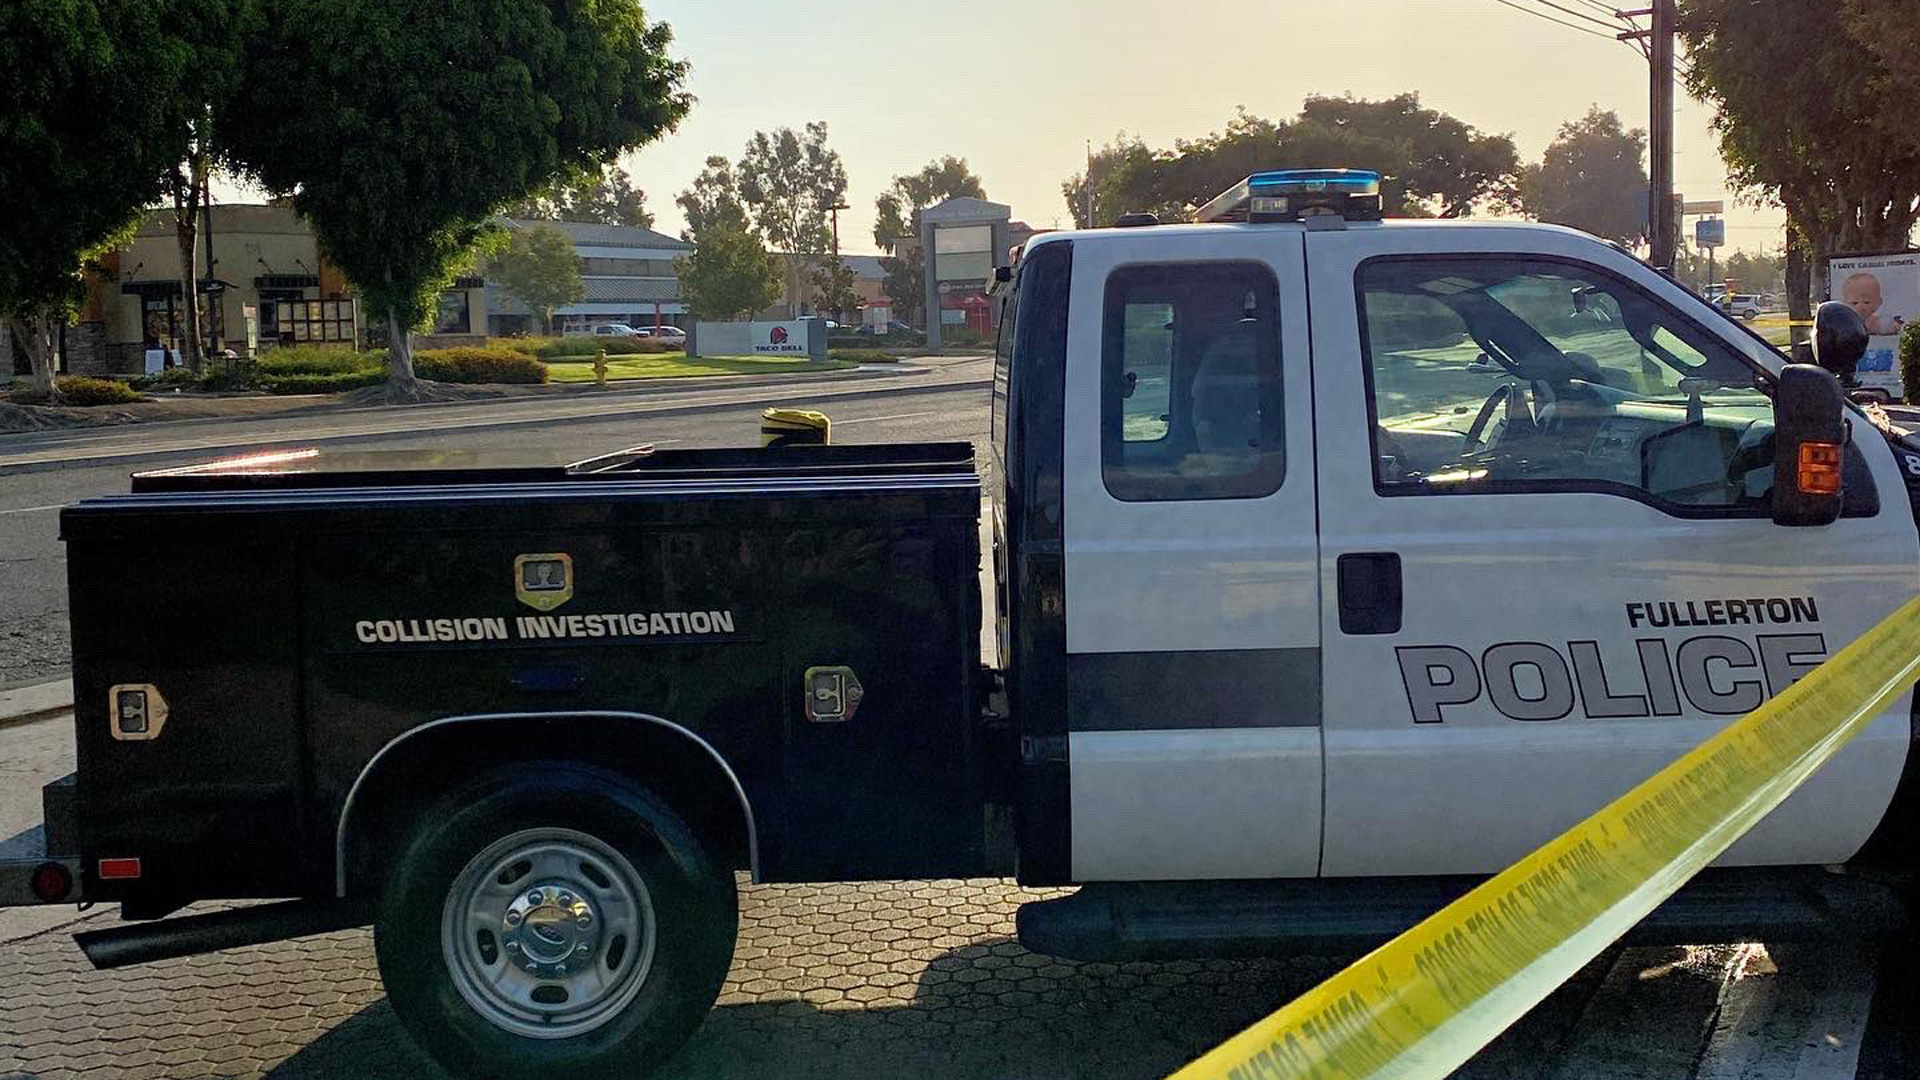 The Fullerton Police Department posted this photo on Twitter after a fatal hit-and-run crash on July 8, 2021.